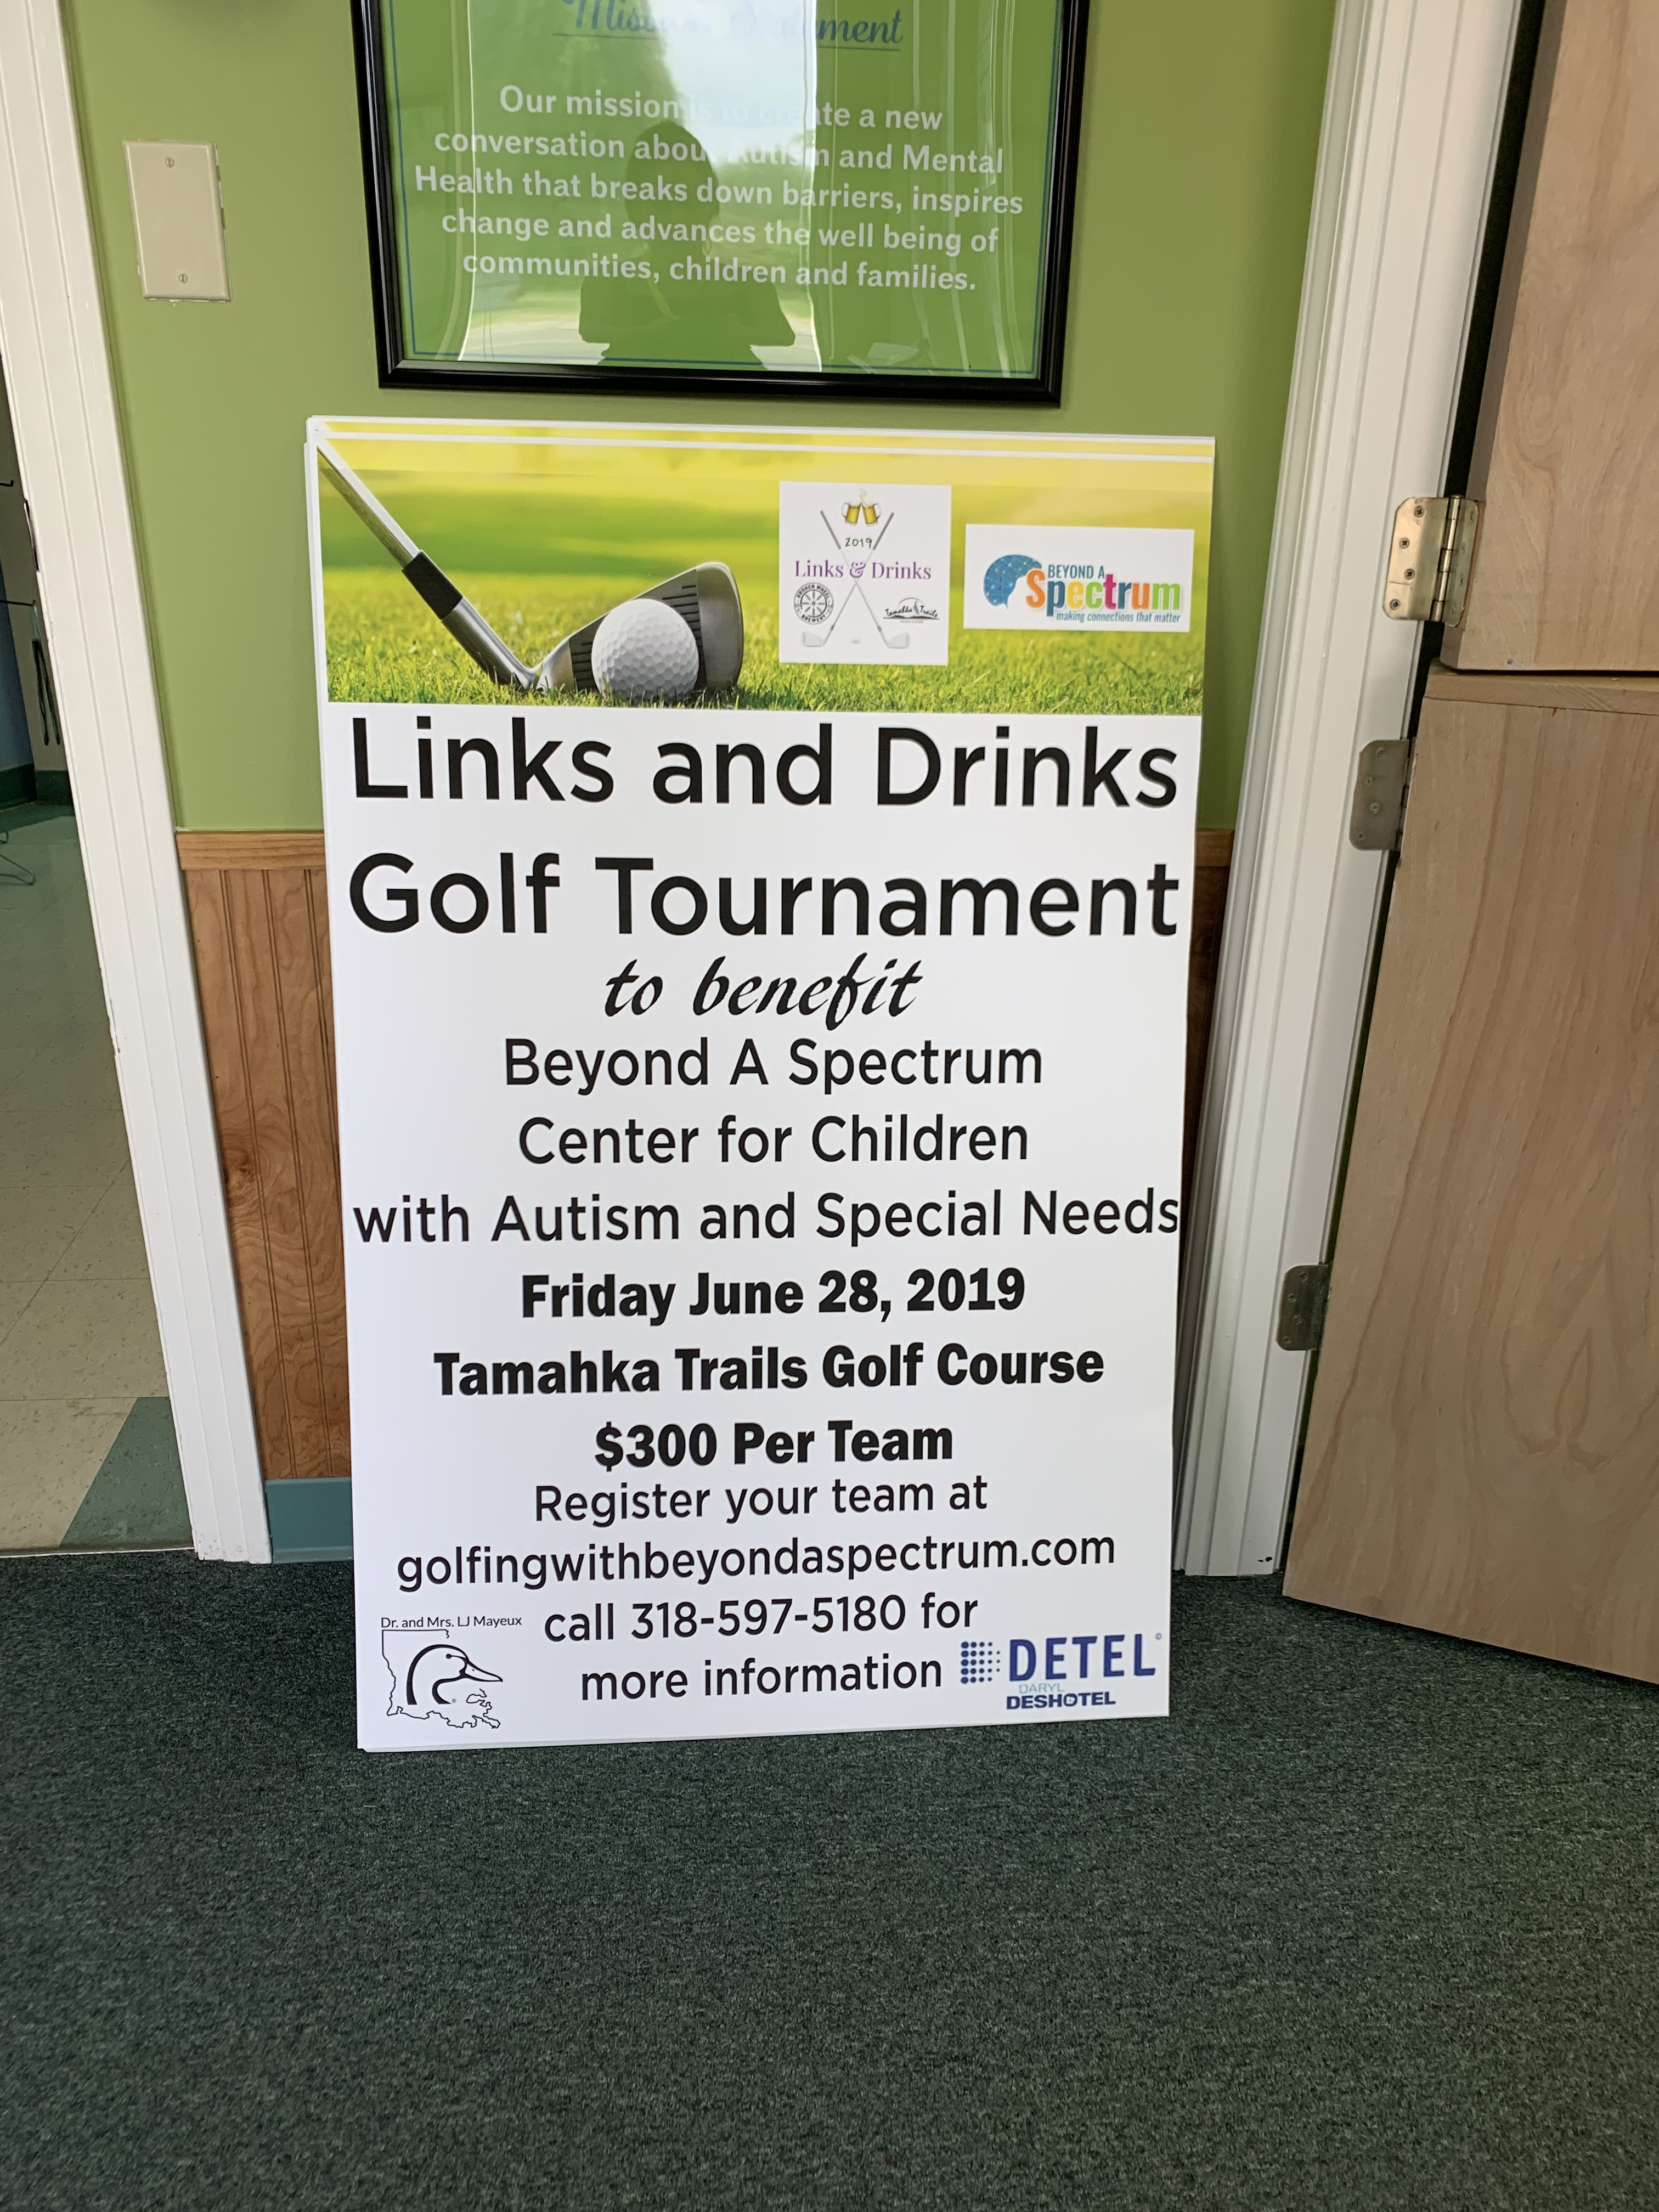 2nd Annual Links and Drinks Golf Tournament Benefiting Beyond A Spectrum Center for Autism and Special Needs gallery image #1